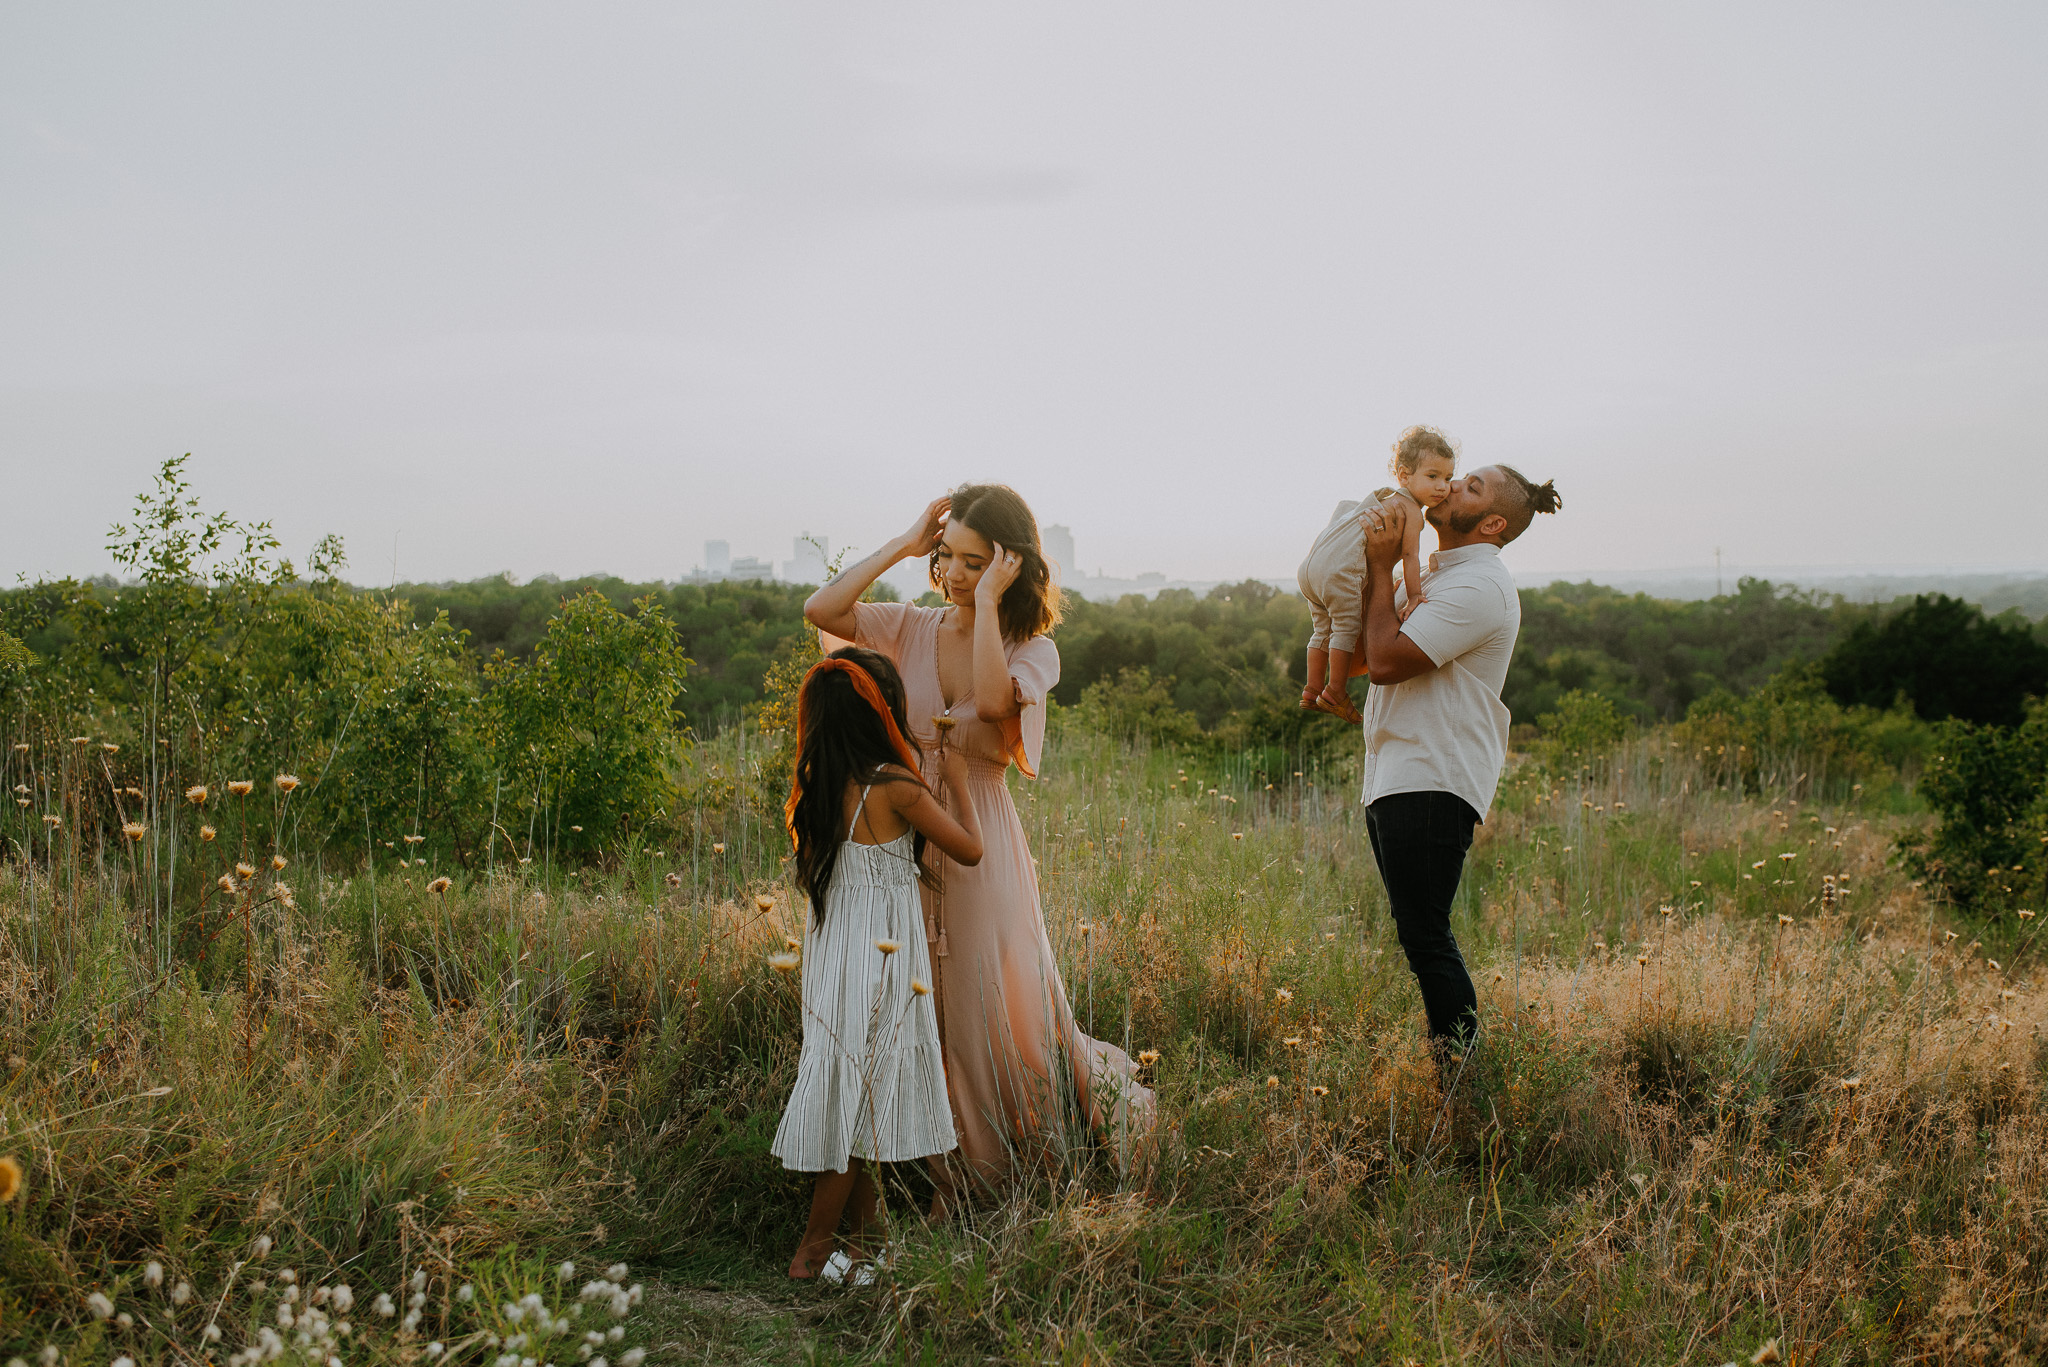 Jessi-marie-photography-dallas-fort-worth-texas-family-photographer-tandy-hills-natural-area-08